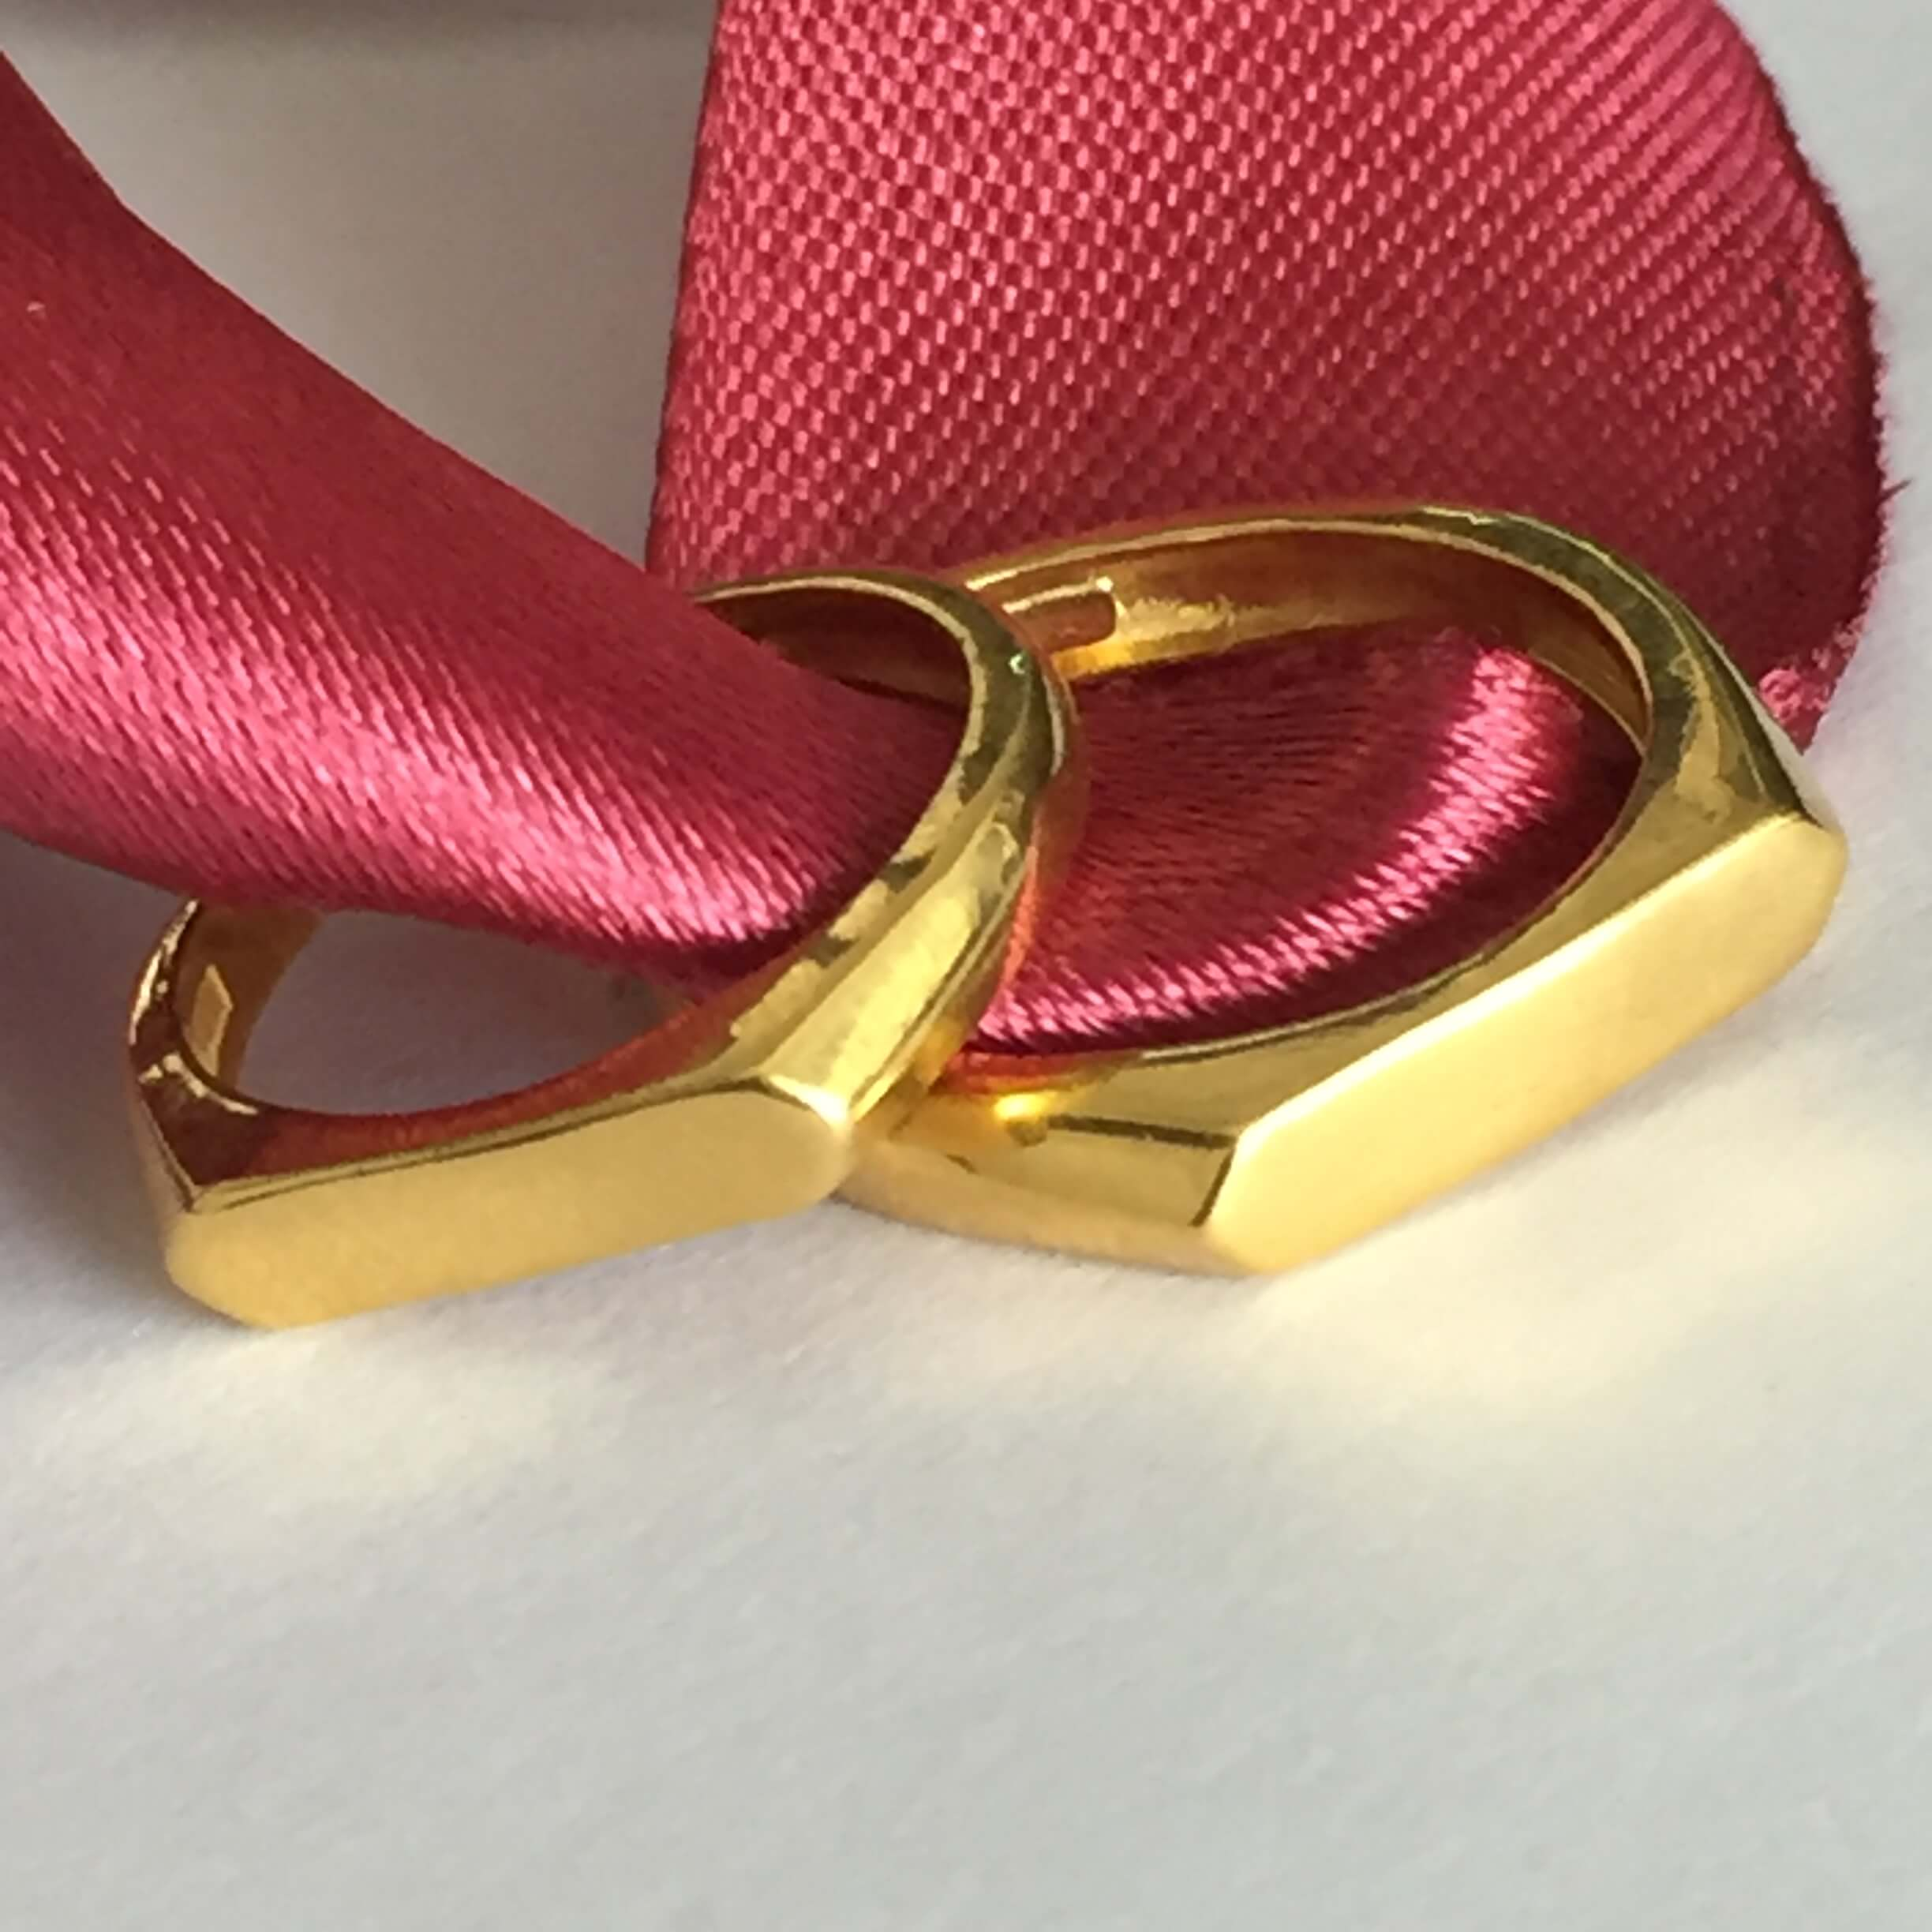 Name-Engraved-Gold-Couple-RIngs